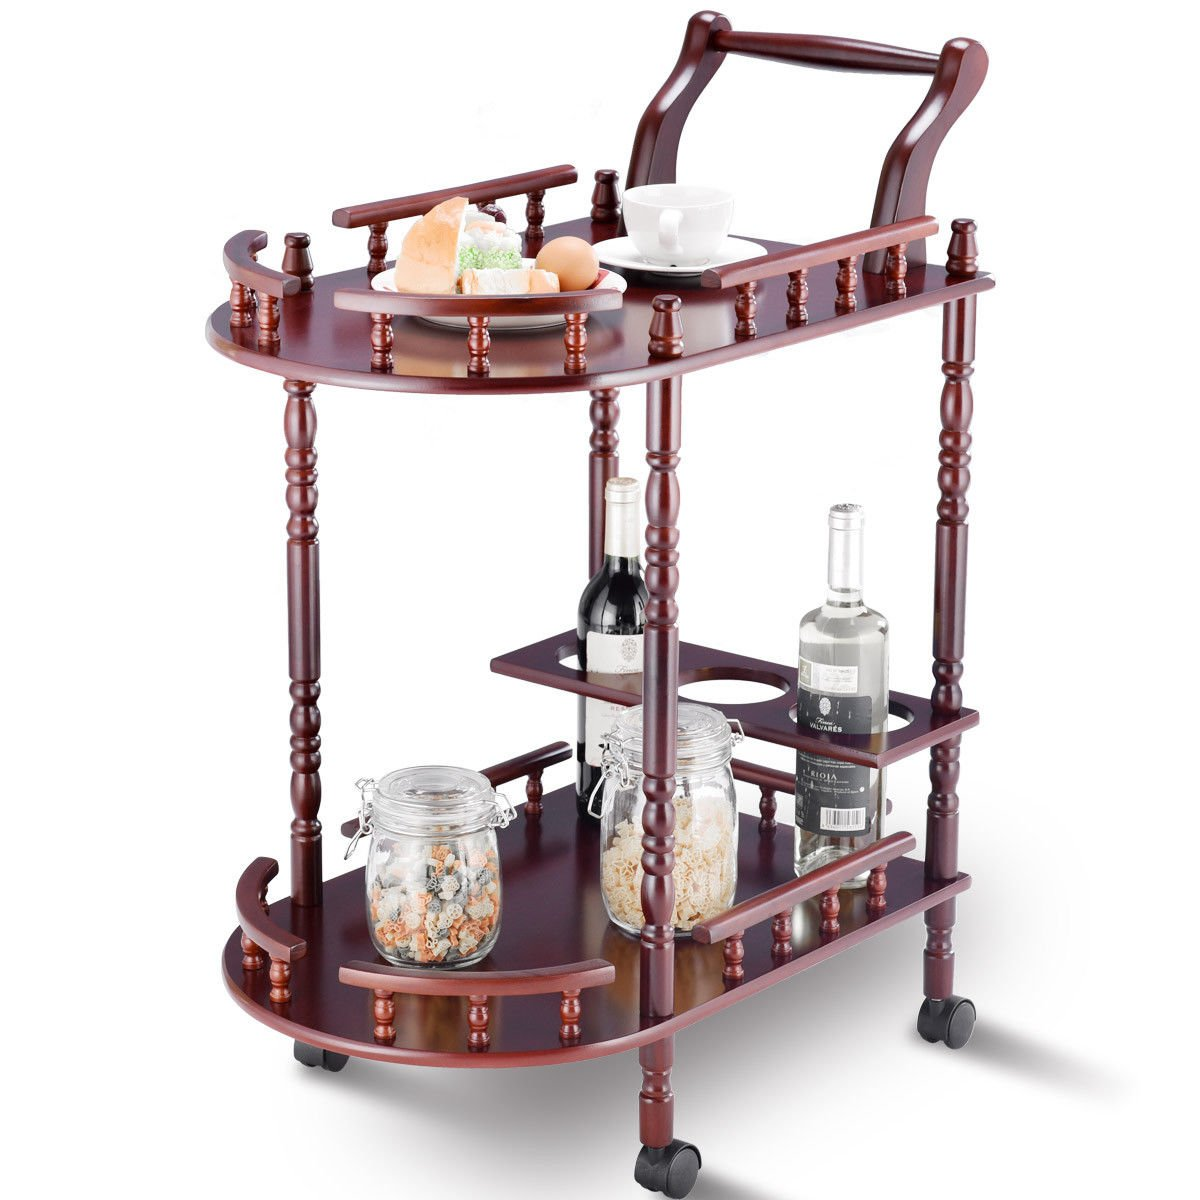 Cypressshop Wood Kitchen Rolling Island Cart Serving Trolley Bar Cart Wine Rack Stand Cherry Storage Utility Organizer Meal Server Preparation Dinning Drinking Shelving Units Home Furniture